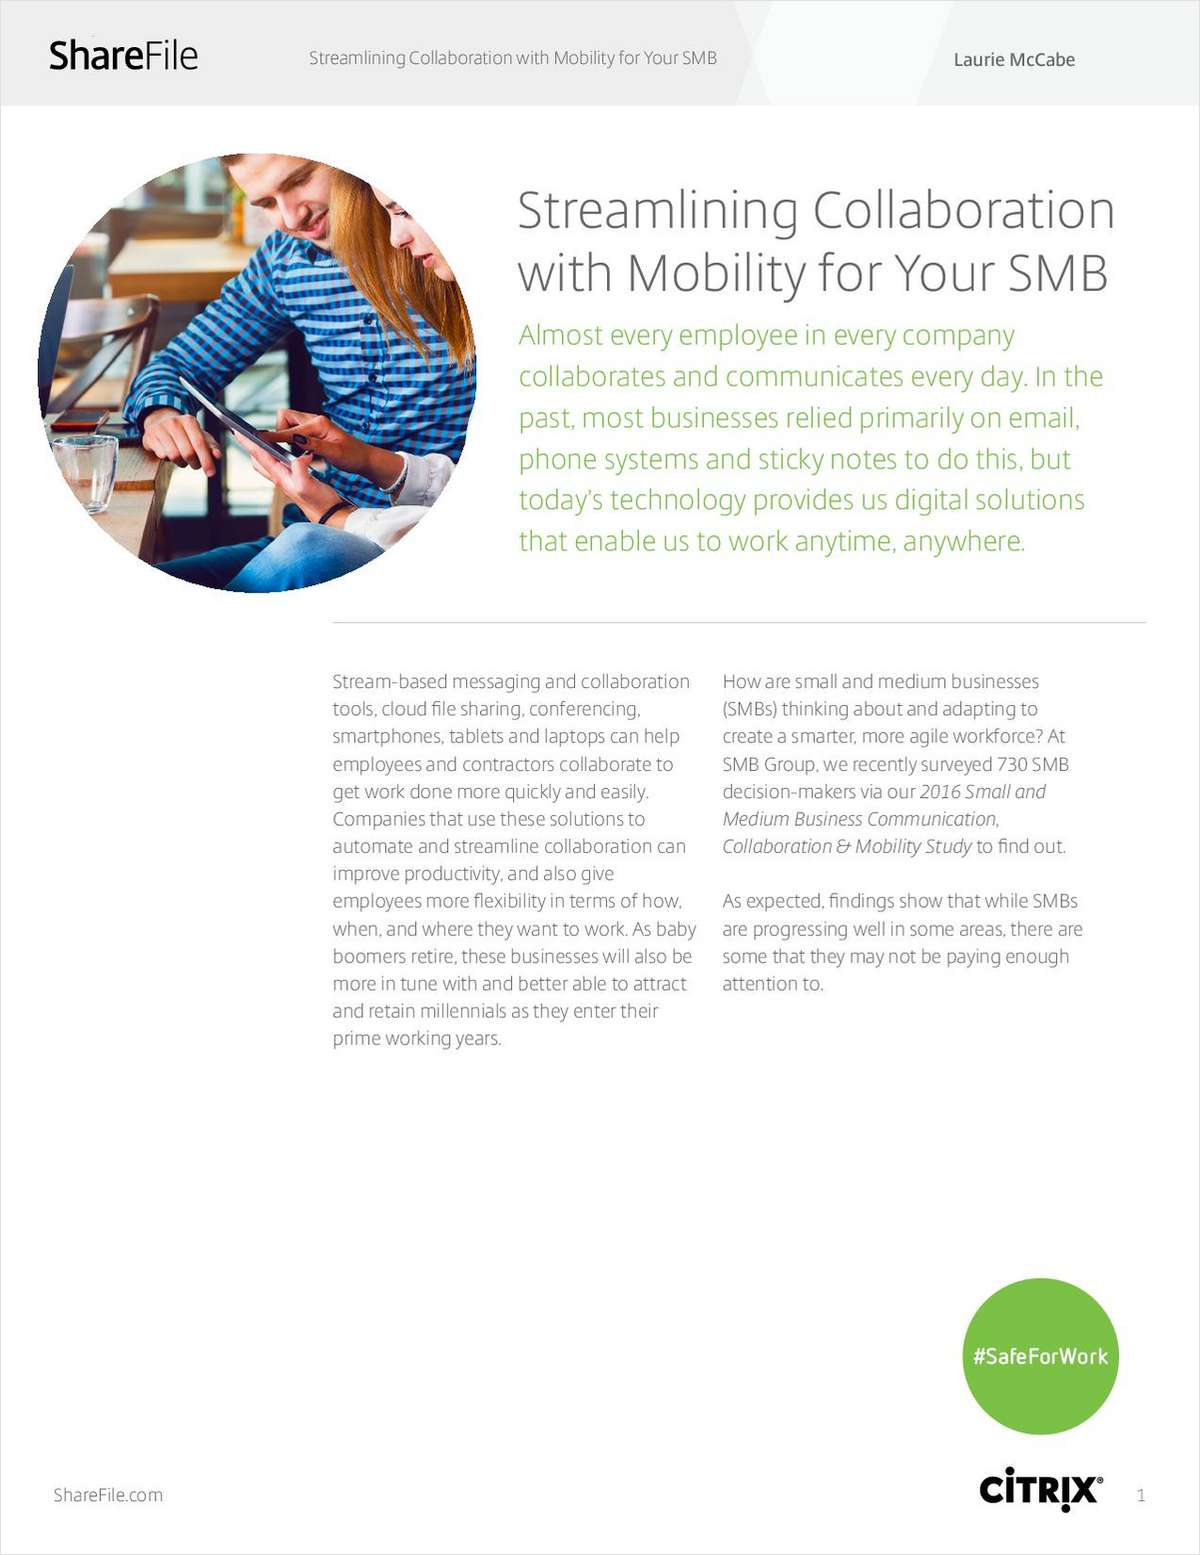 Streamlining Collaboration with Mobility for Your Practice